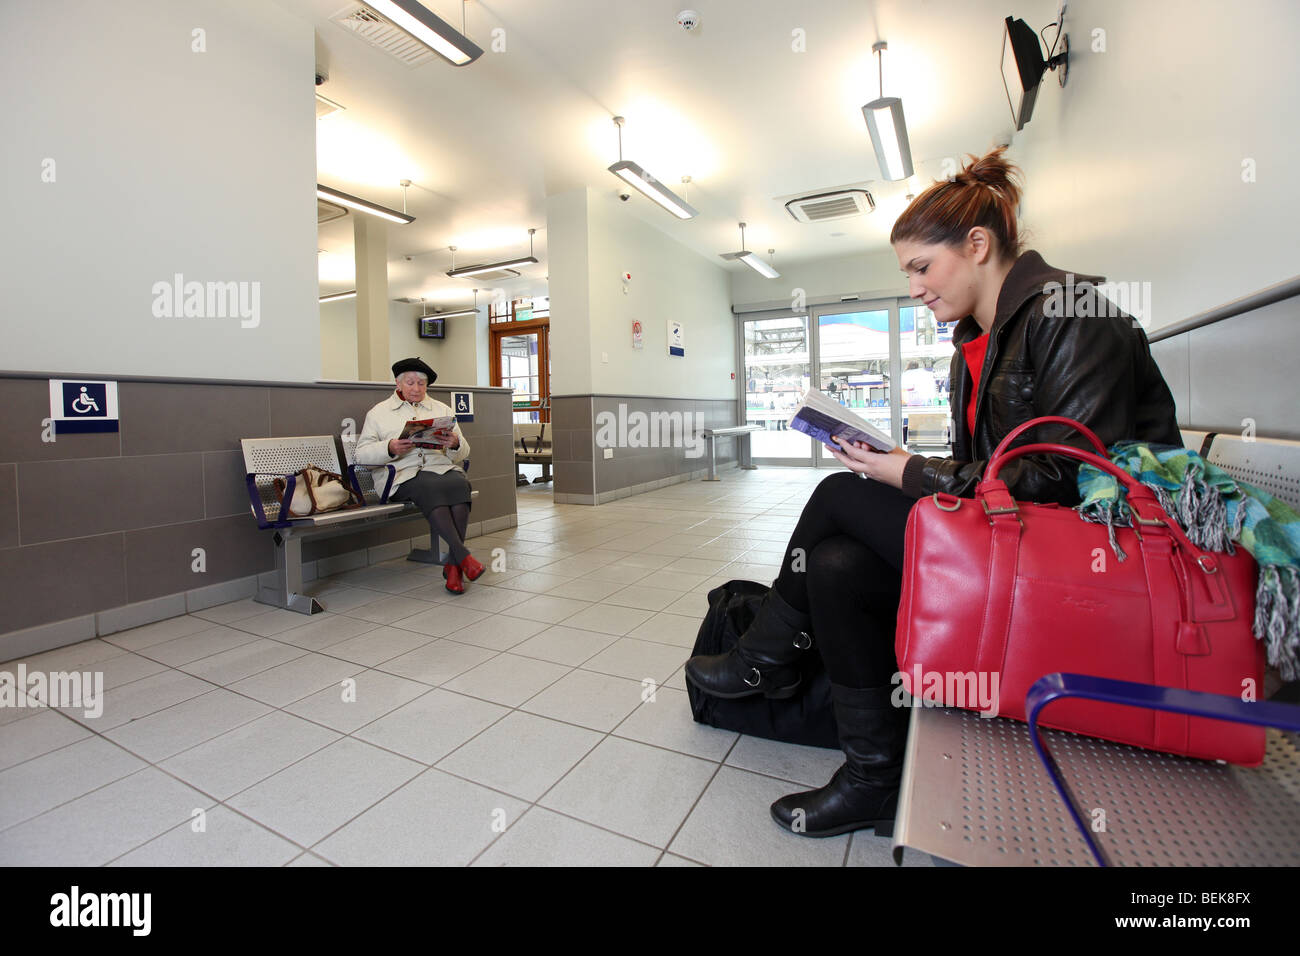 Passengers in Scotrail waiting room at Aberdeen railway station, Scotland, UK - Stock Image